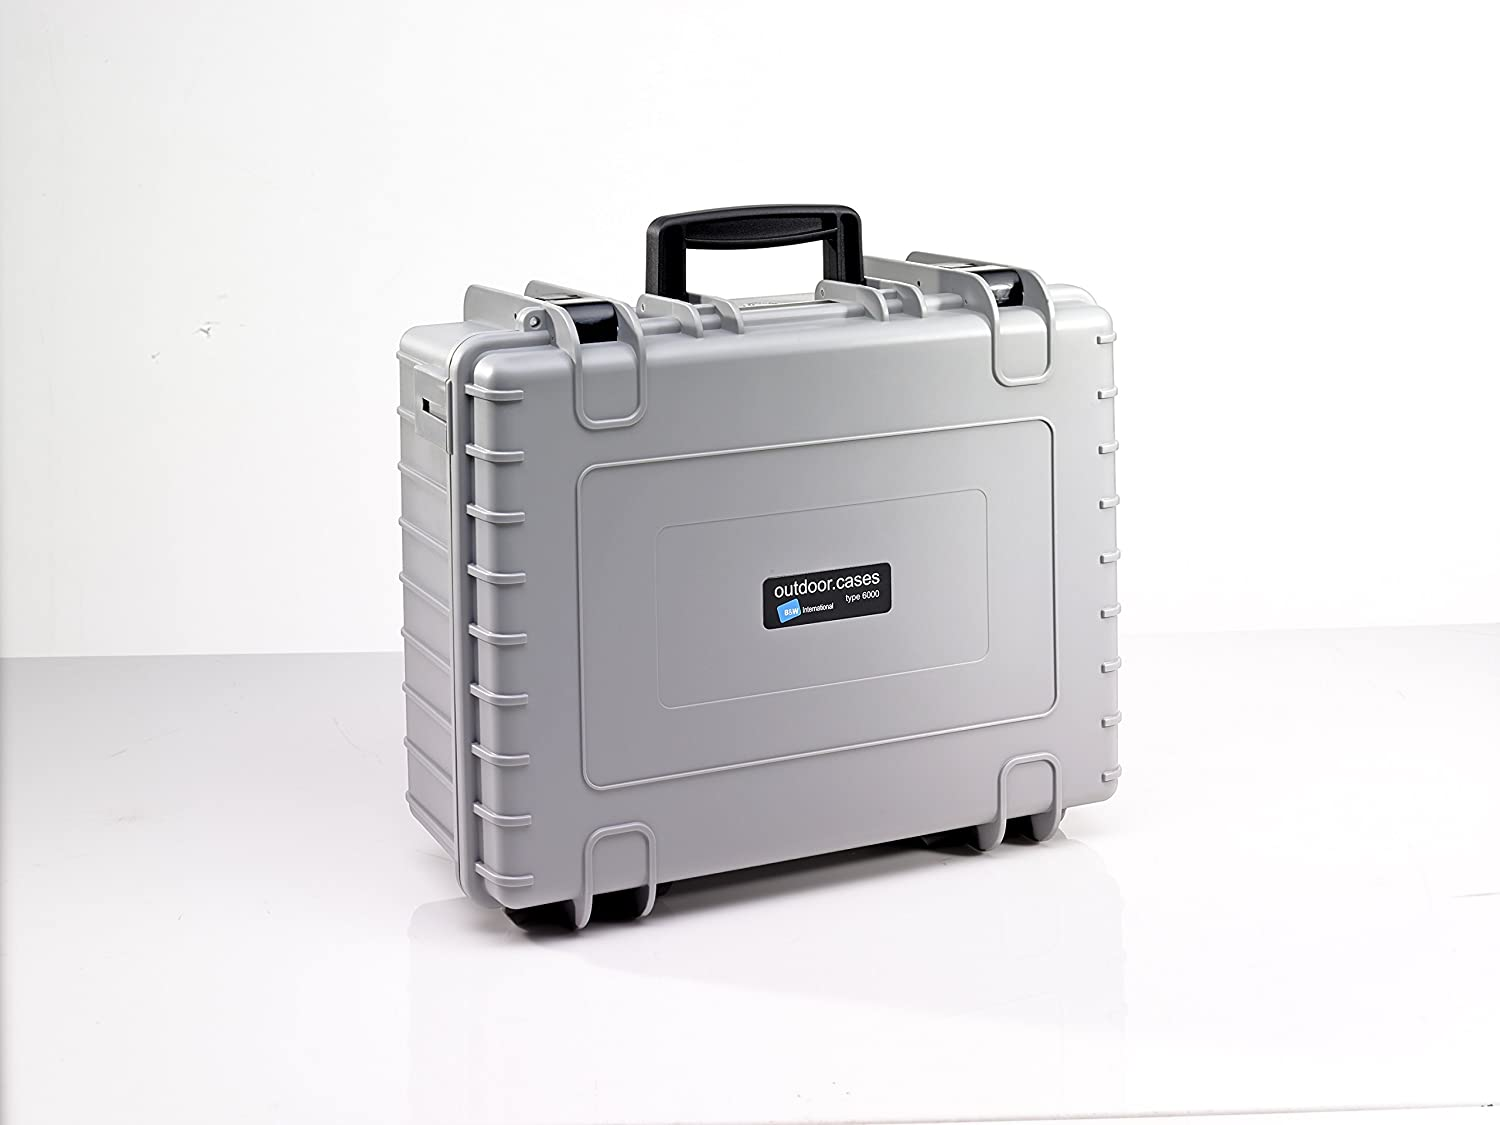 The Original RPD B/&W Outdoor.Cases Type 6000 with Padded Divider System